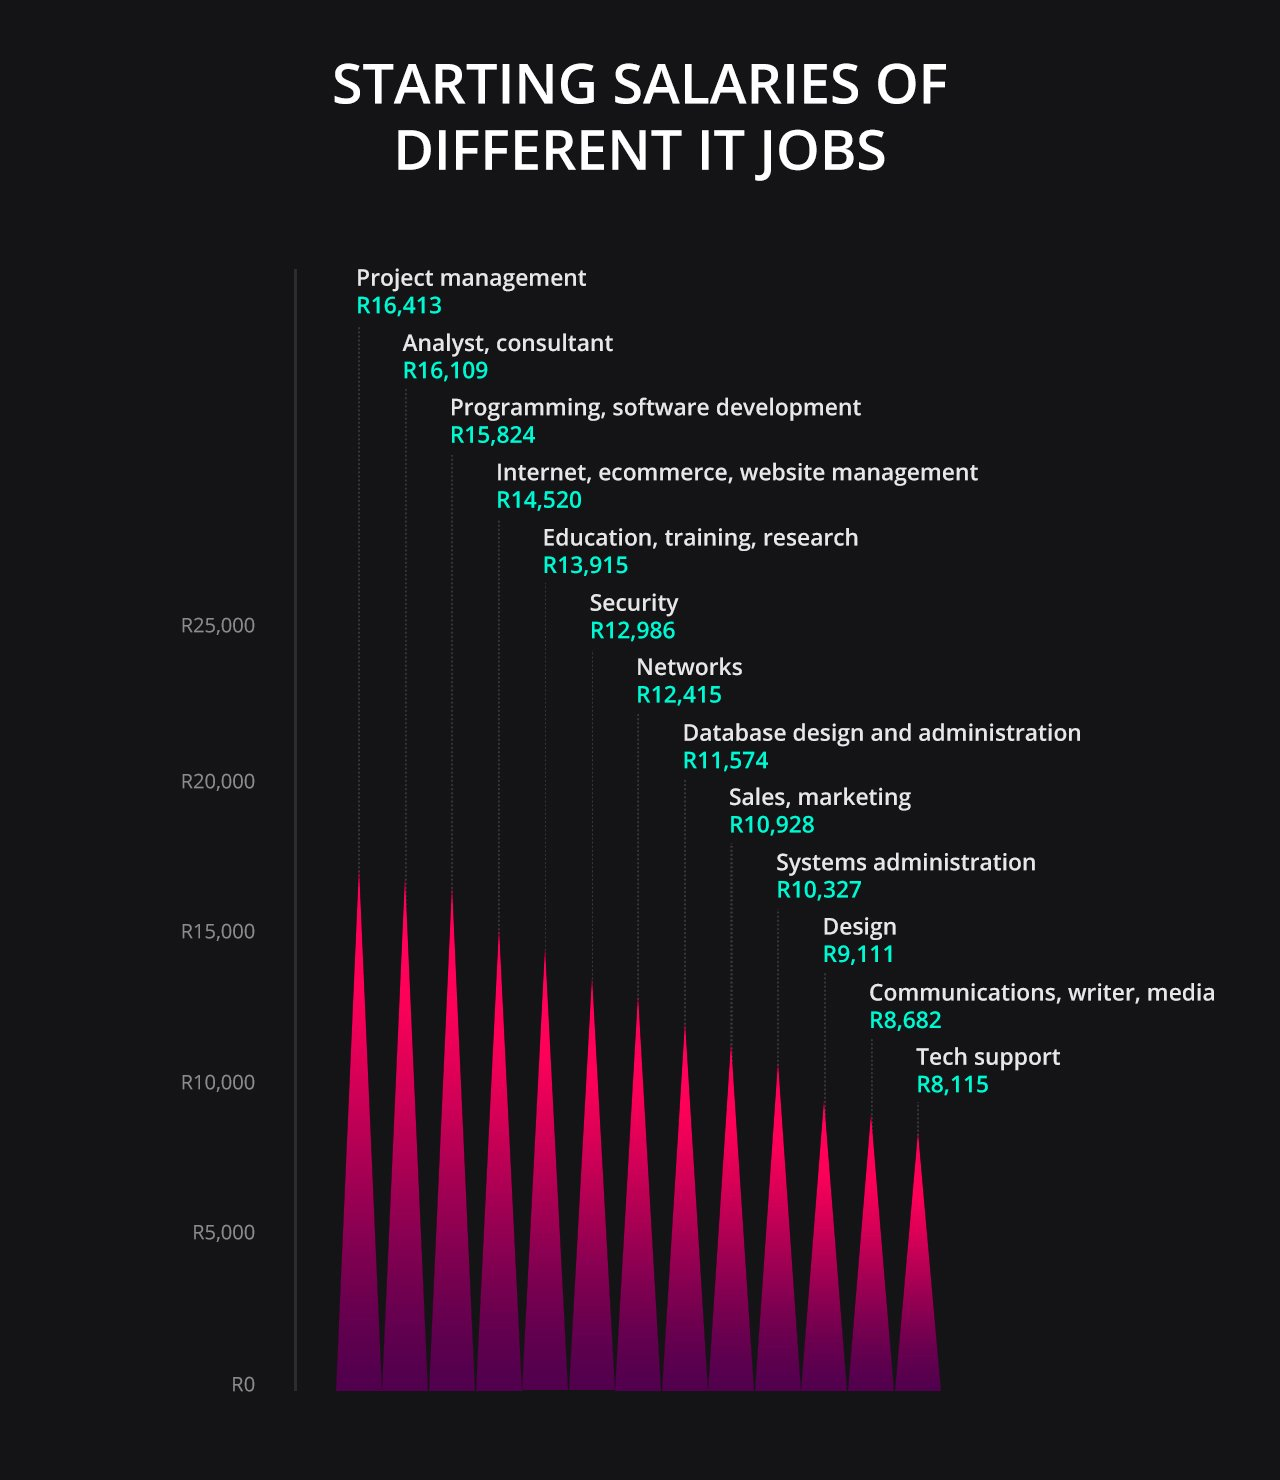 IT Jobs with the highest starting salaries